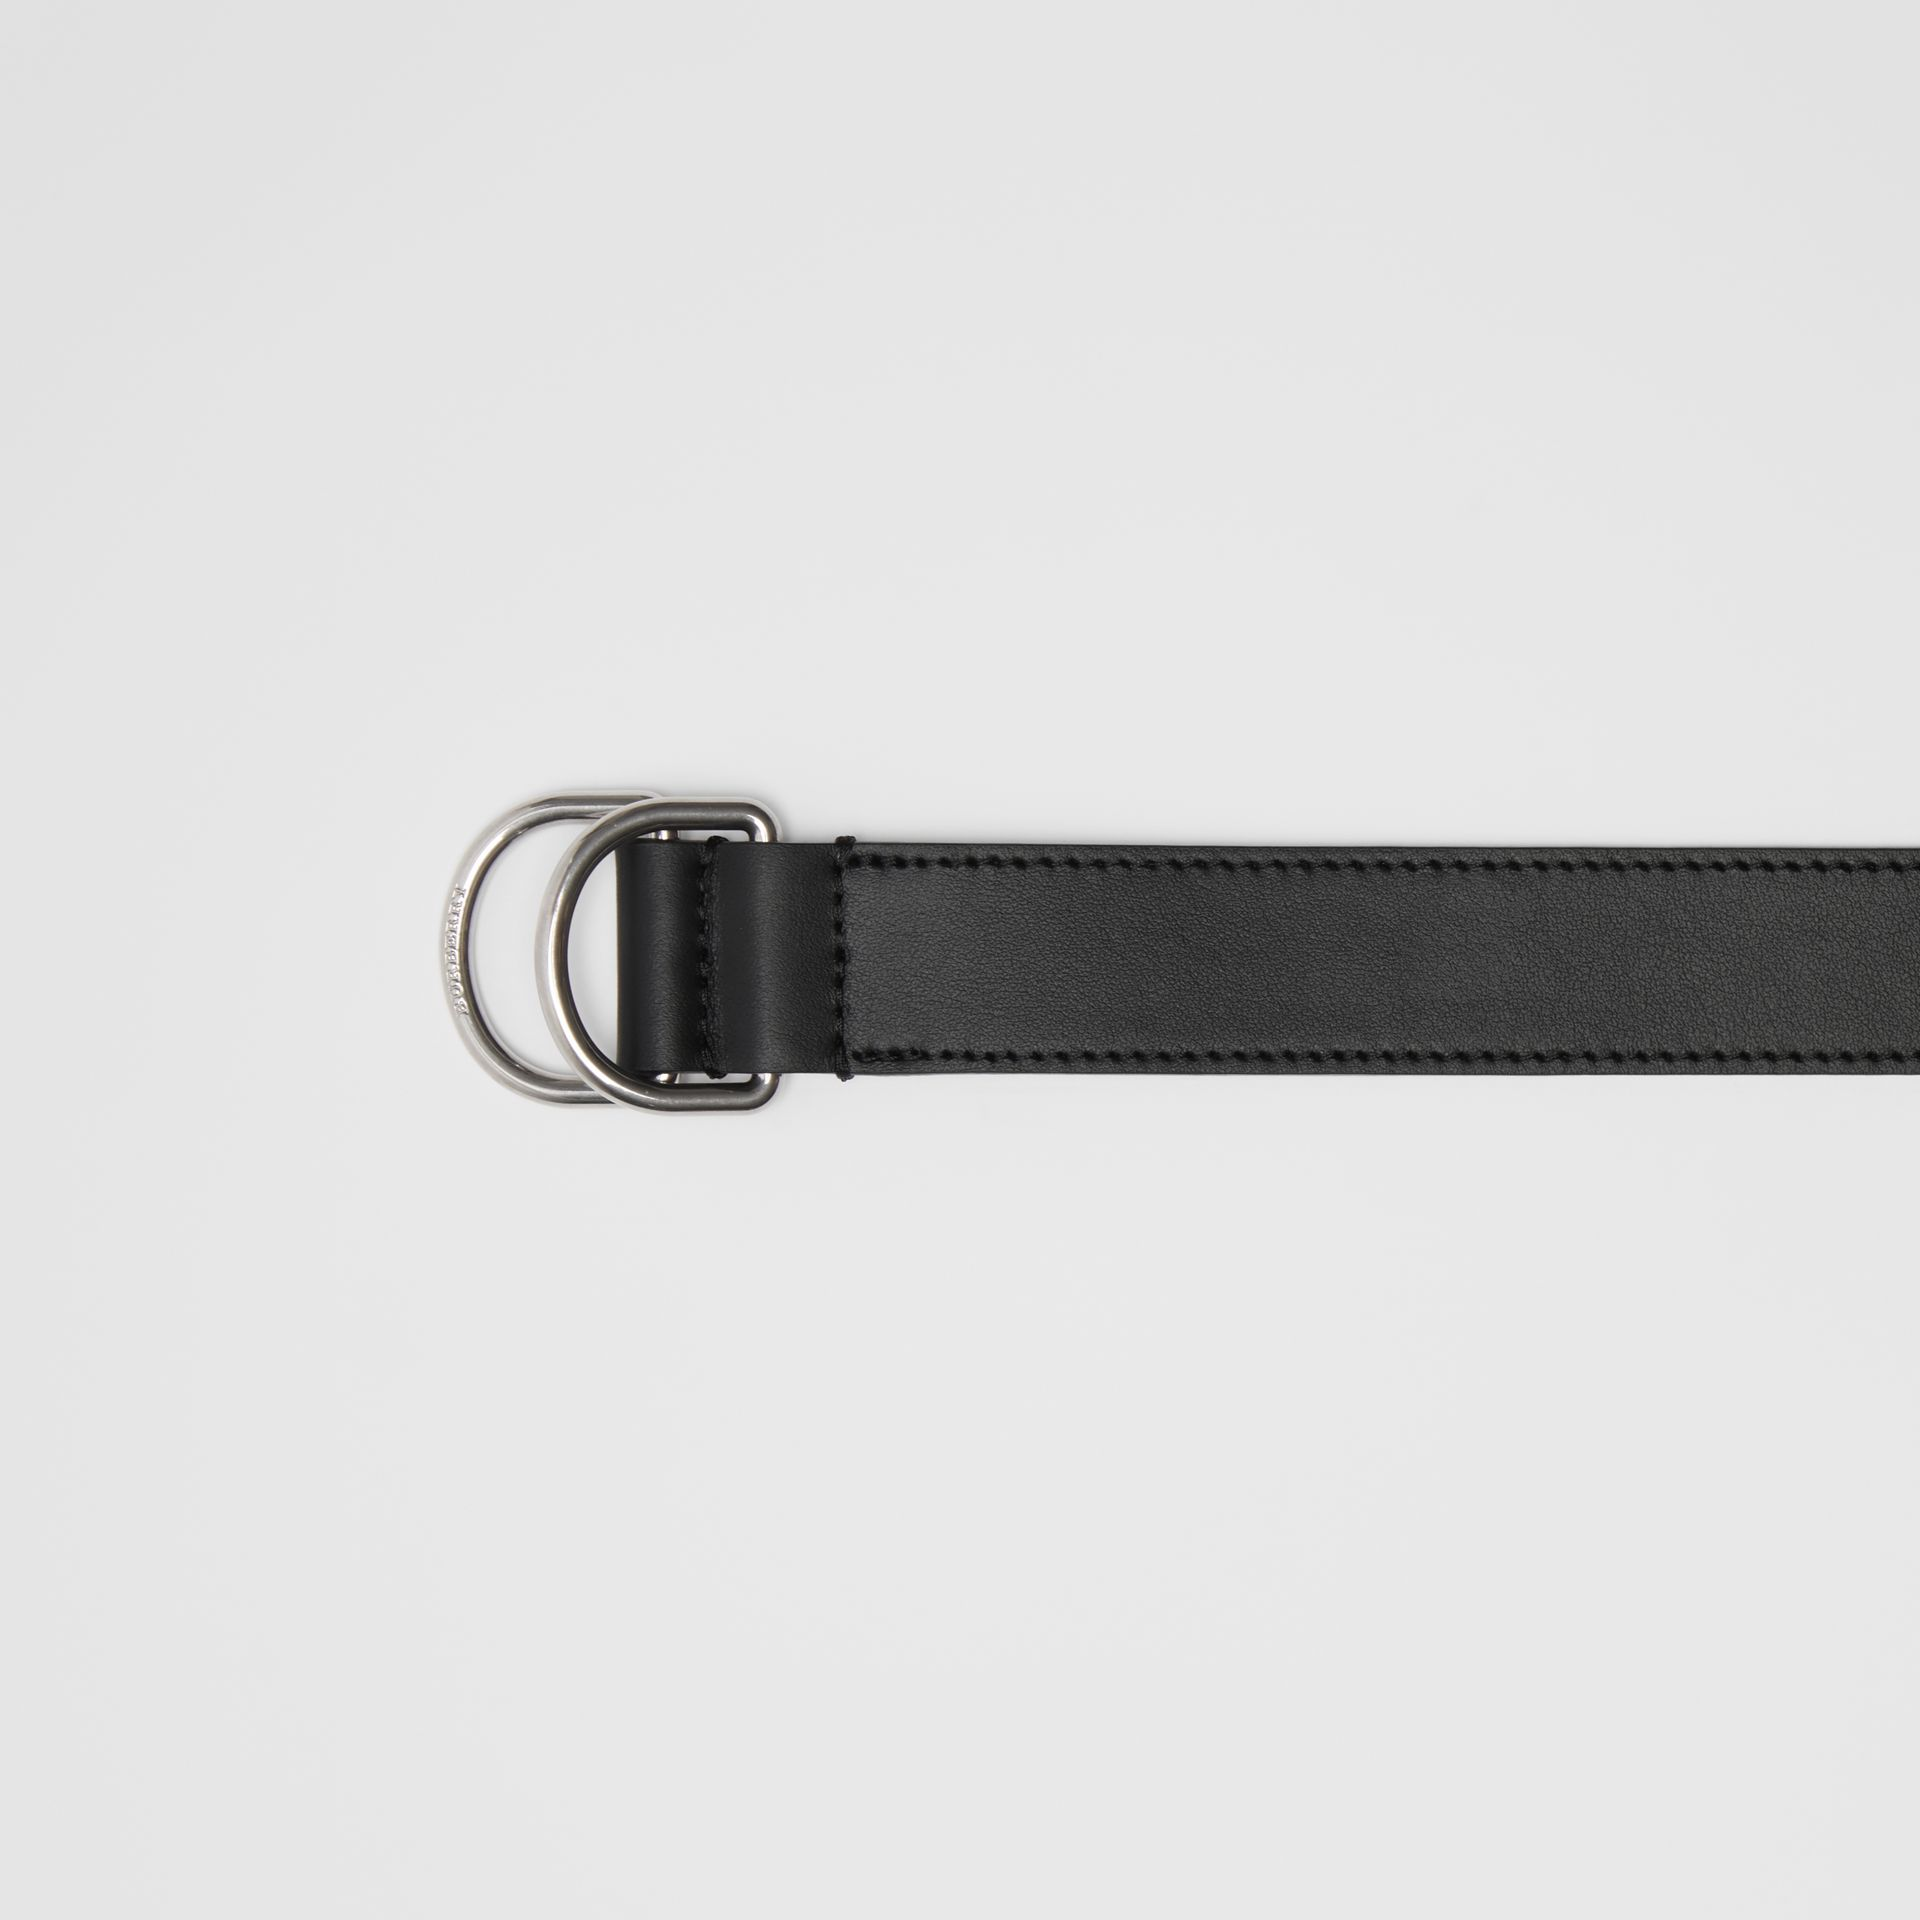 Leather Double D-ring Belt in Black - Men | Burberry - gallery image 1